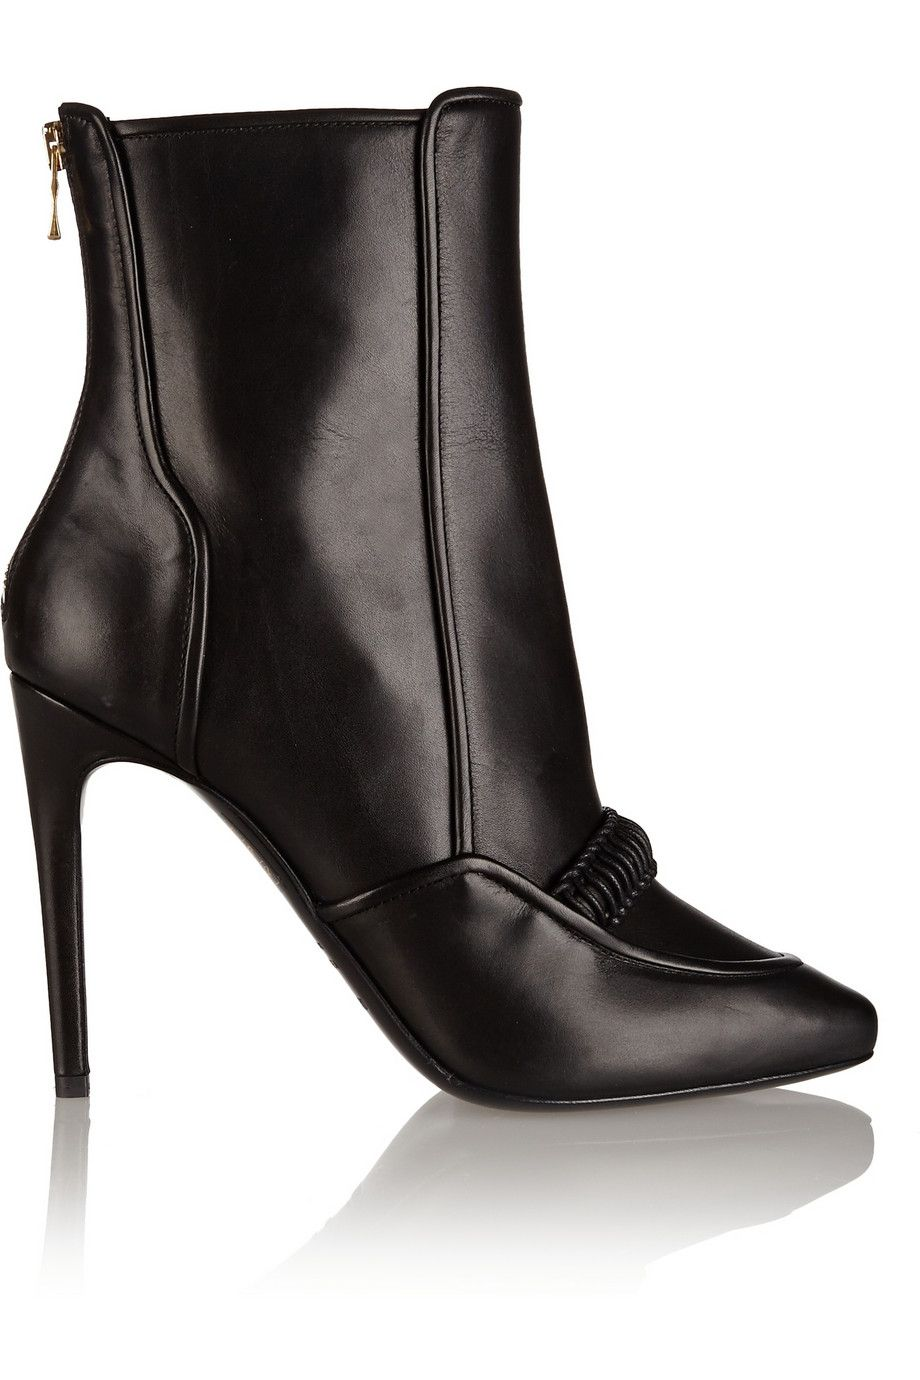 Balmain Leather Ankle Boots sVNEOO